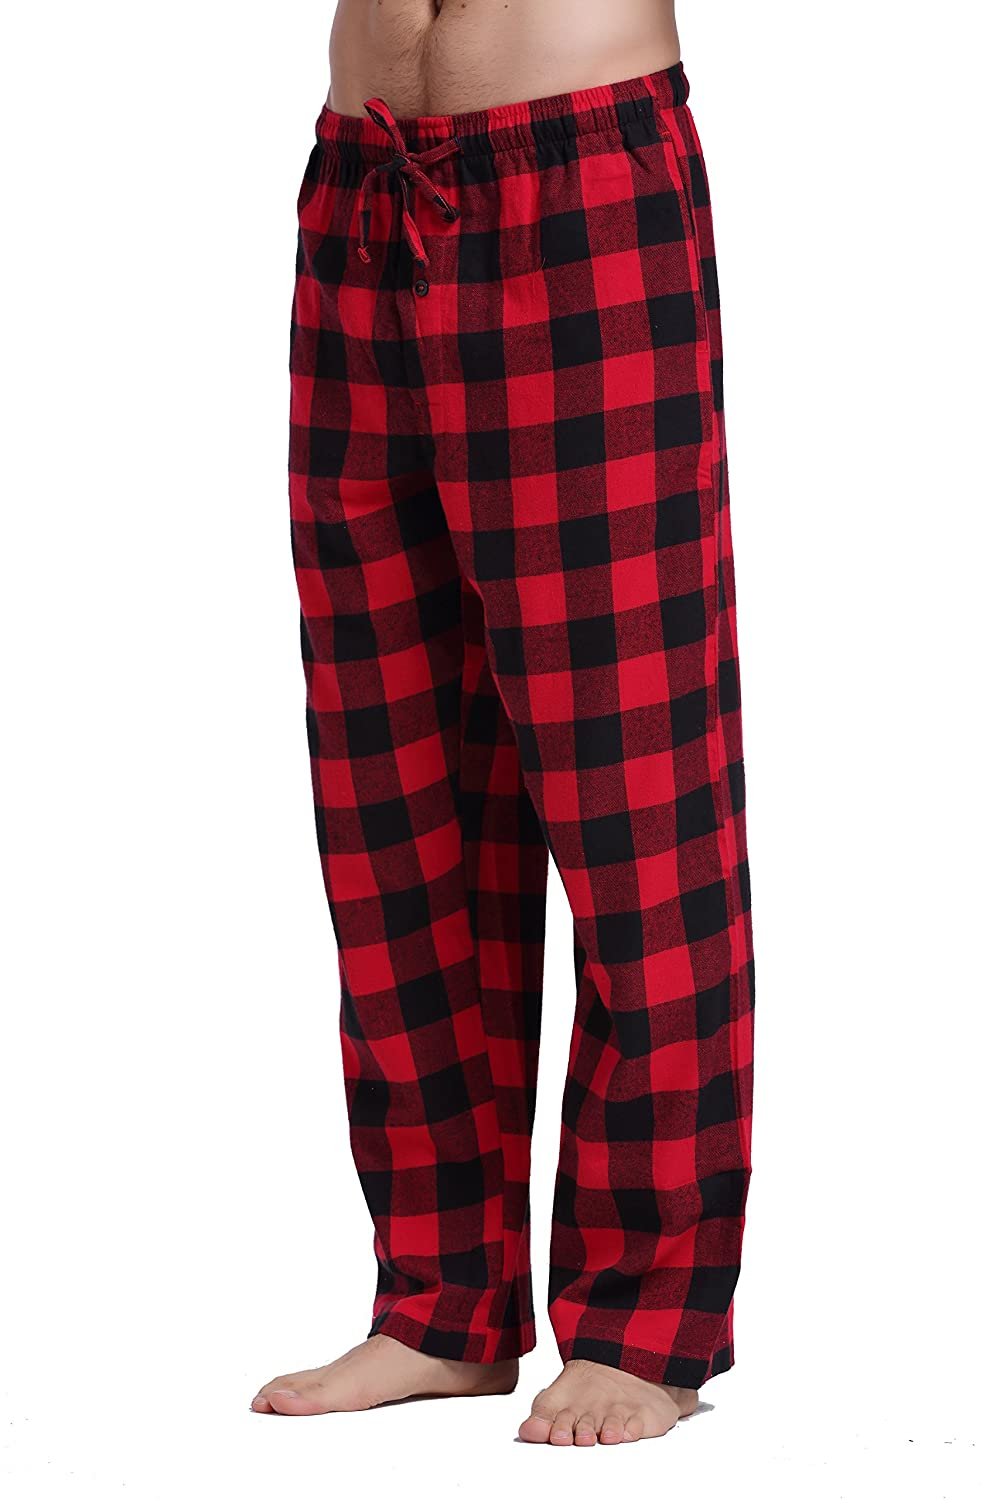 Pajama Pants We use cookies to better understand how the site is used and give you the best experience. By continuing to use this site, you consent to our Cookie Policy.